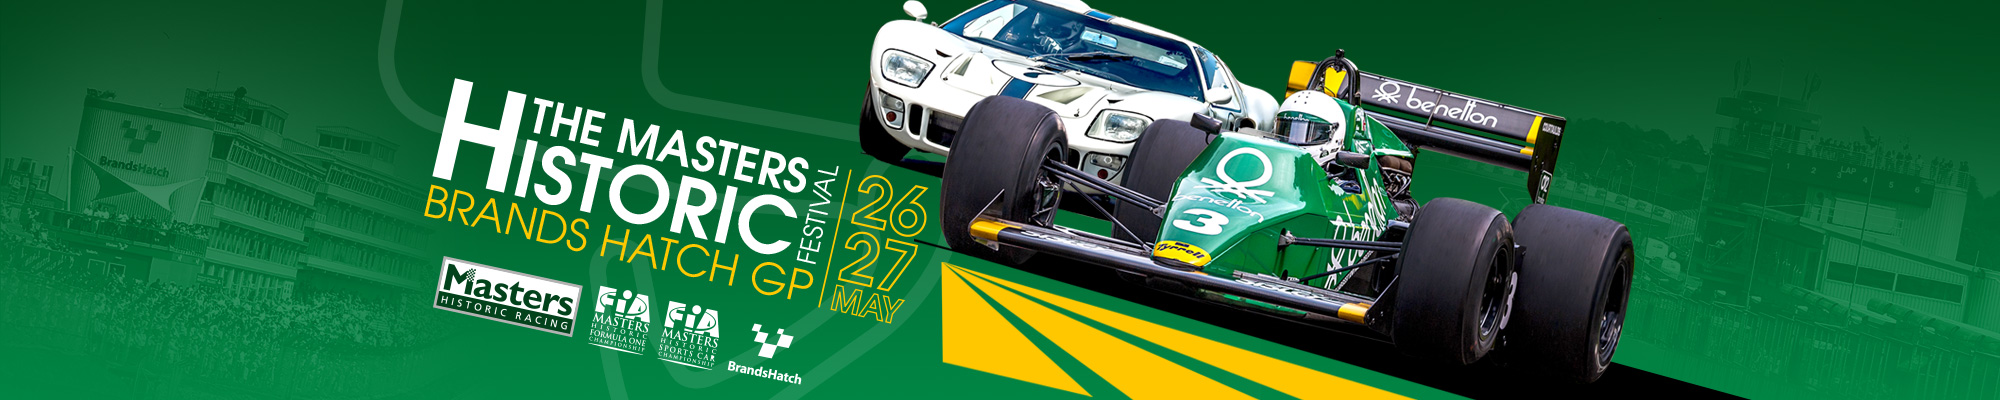 MSV Tickets - Masters Historic Festival - Brands Hatch